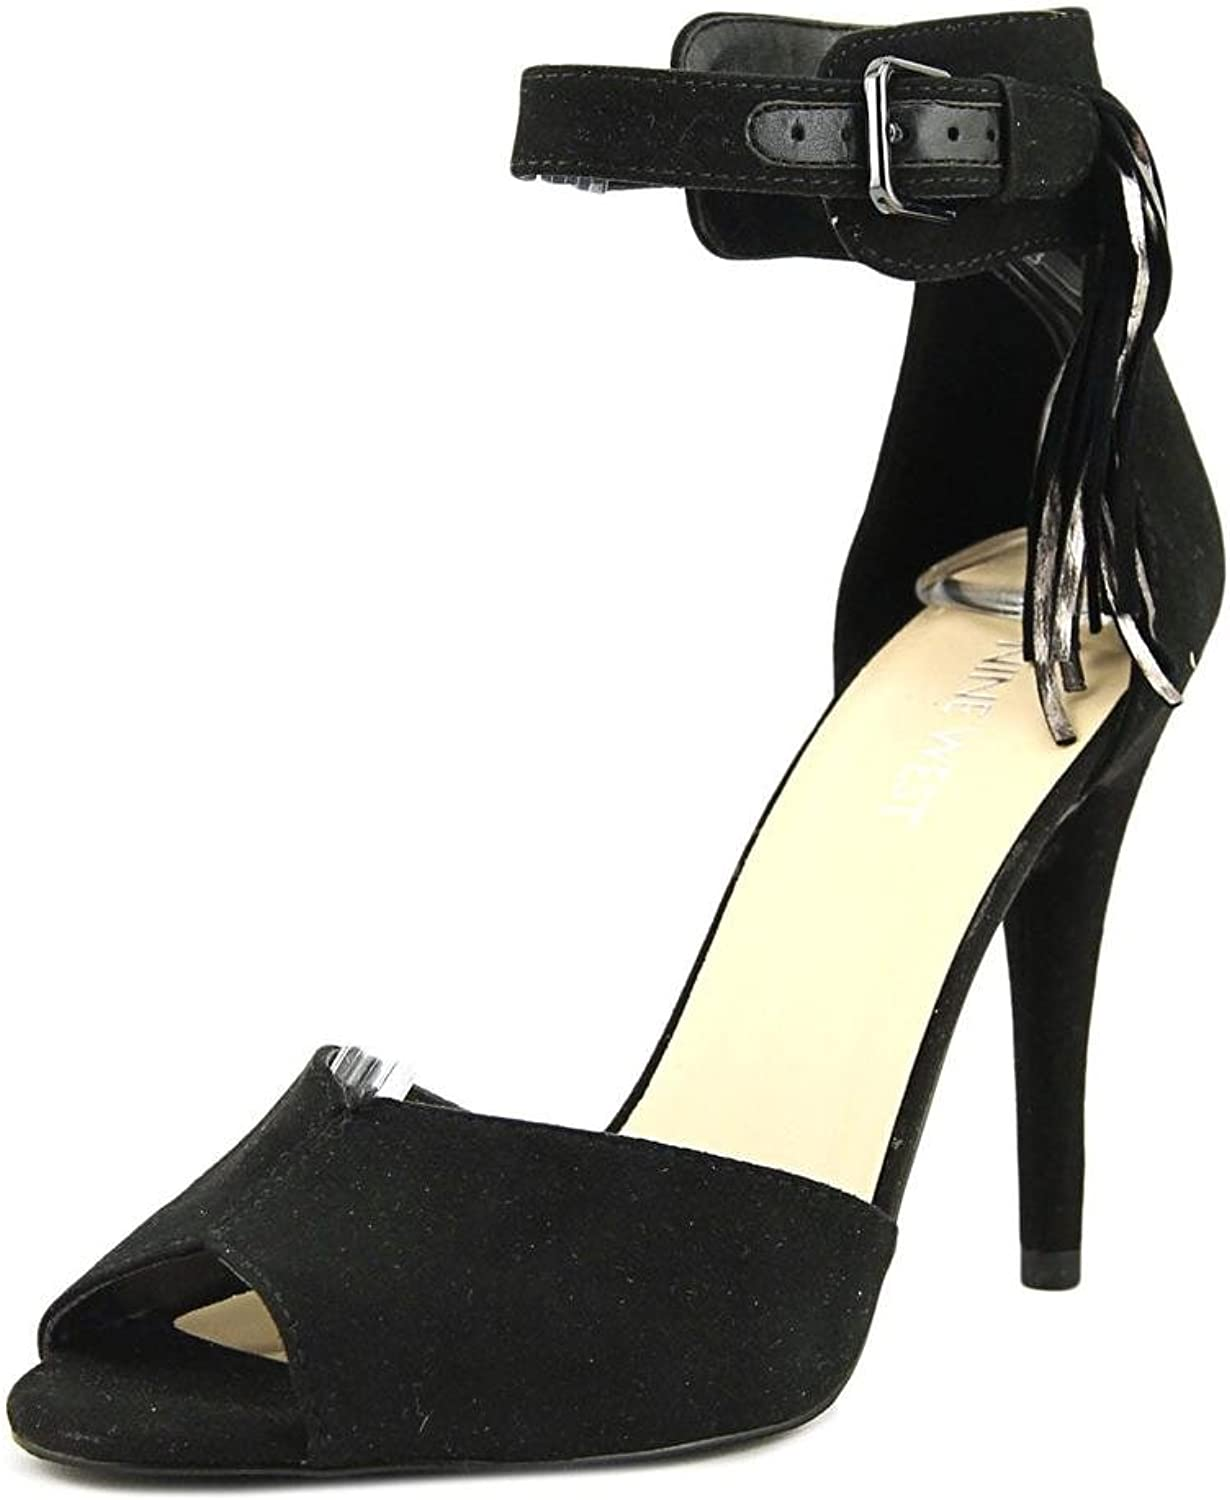 Nine West Womens Amma Peep Toe Casual Ankle Strap Sandals